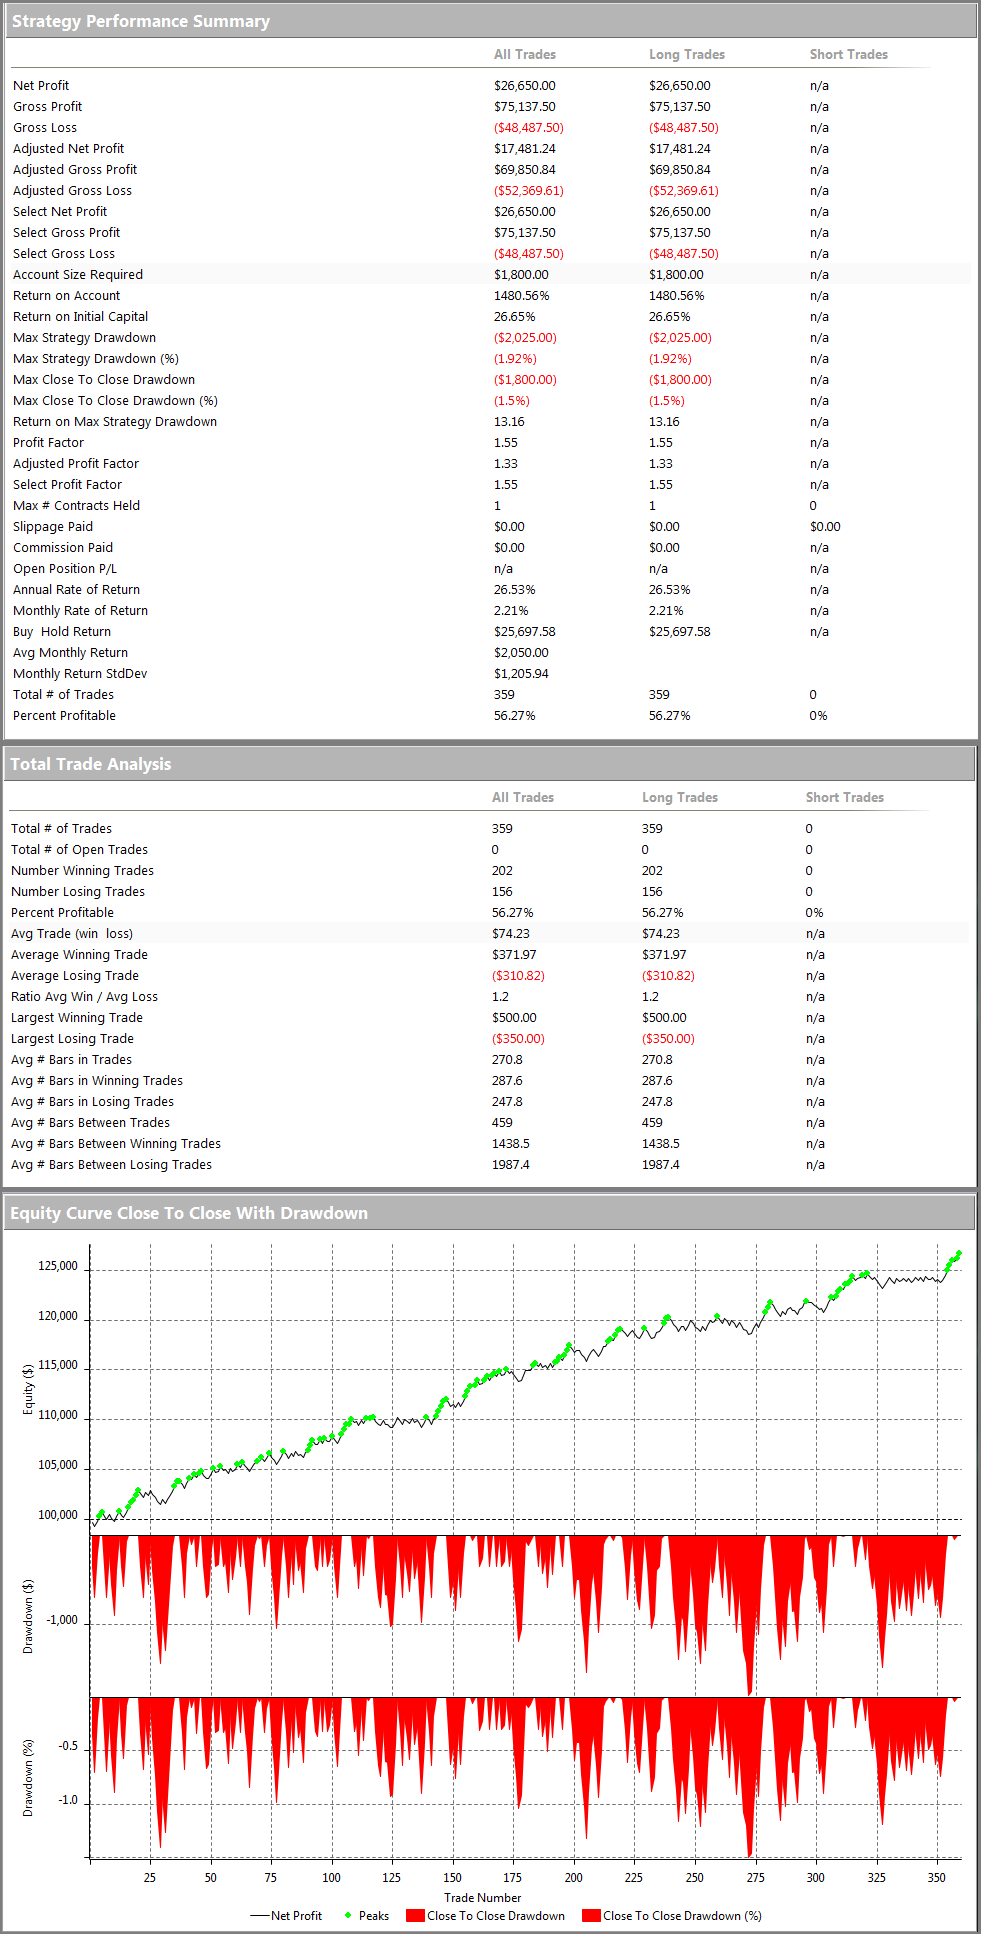 MultiCharts 10 Exhaust and Reverse E-mini S&P Performance Summary